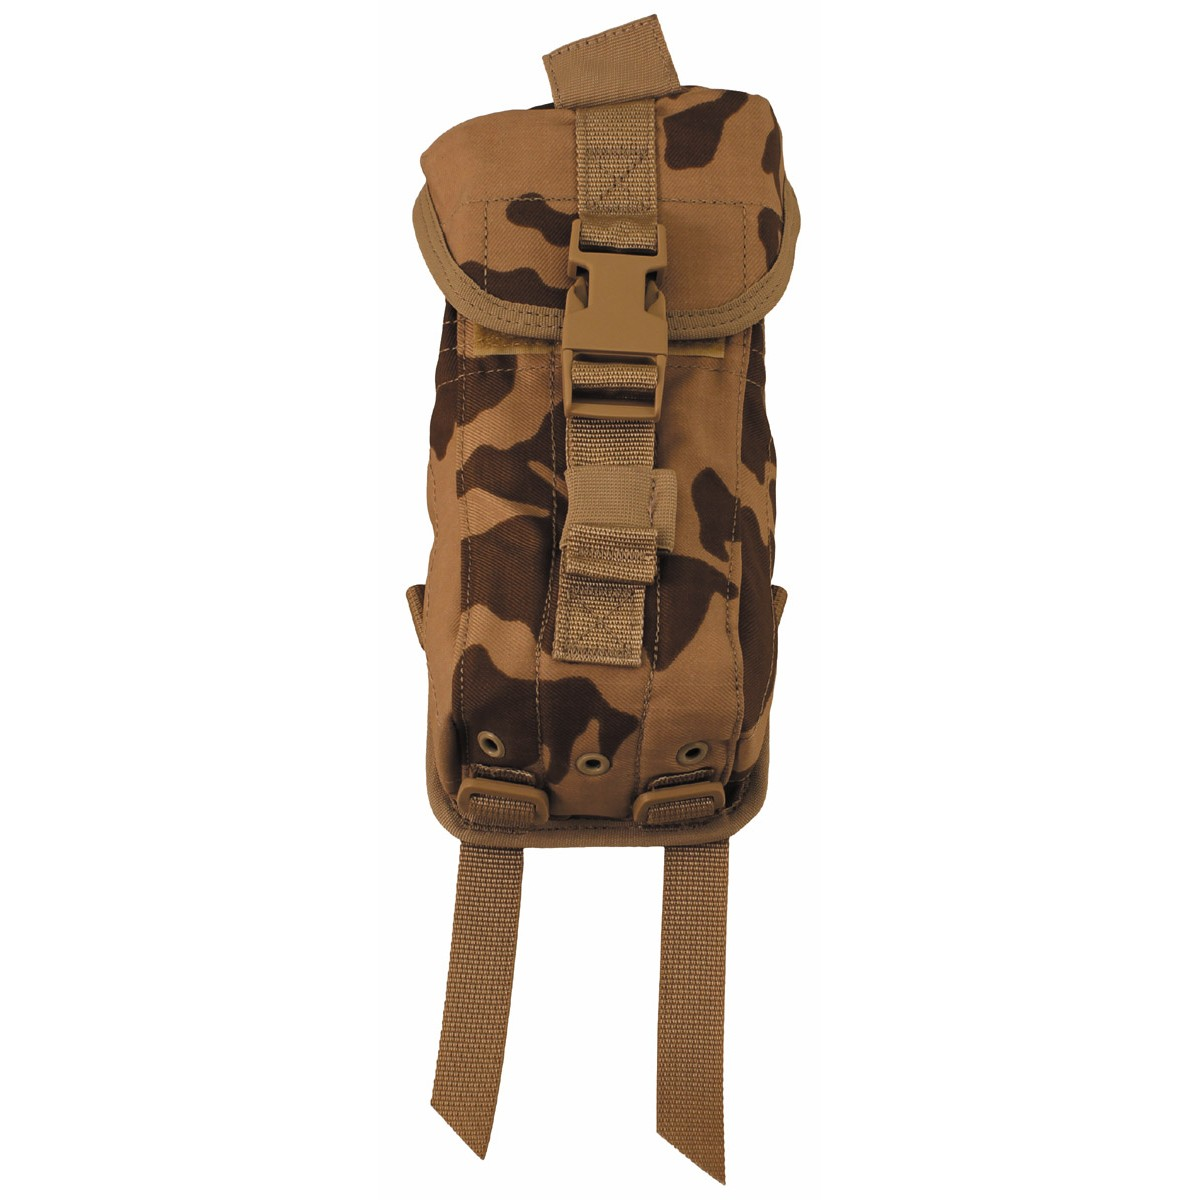 VZ58,SA58 Professinal CZ Army Double Ammo Pouch - Desert Camo M95